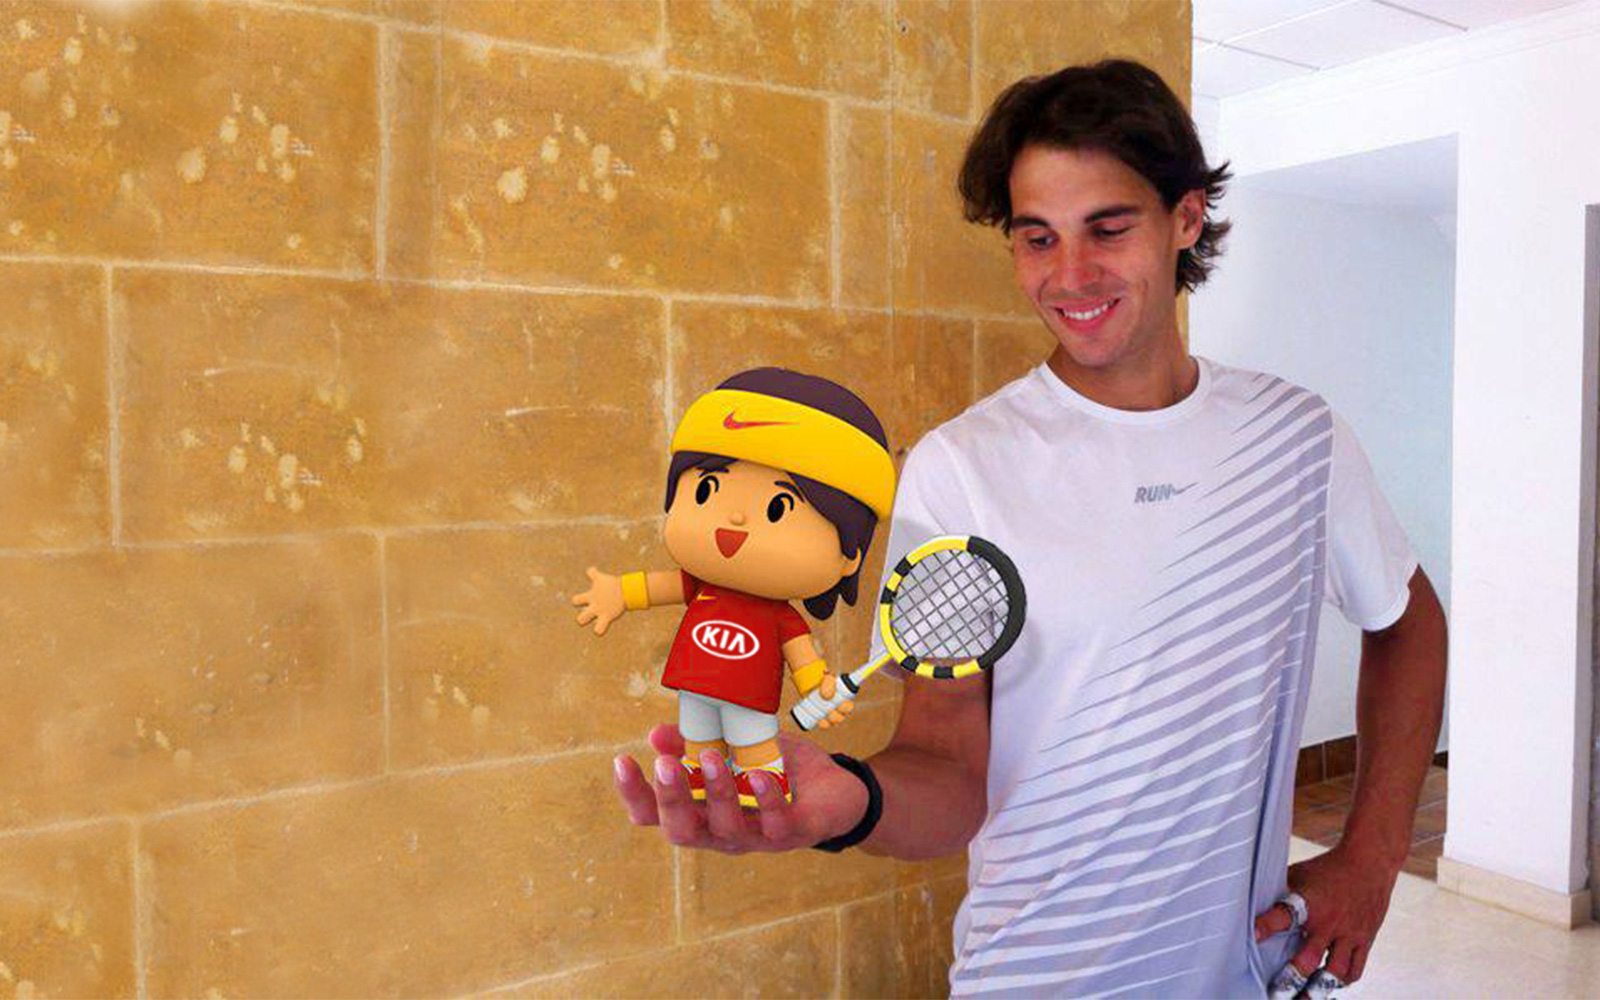 Kia joins Pocoyó and Rafael Nadal in his most supportive version